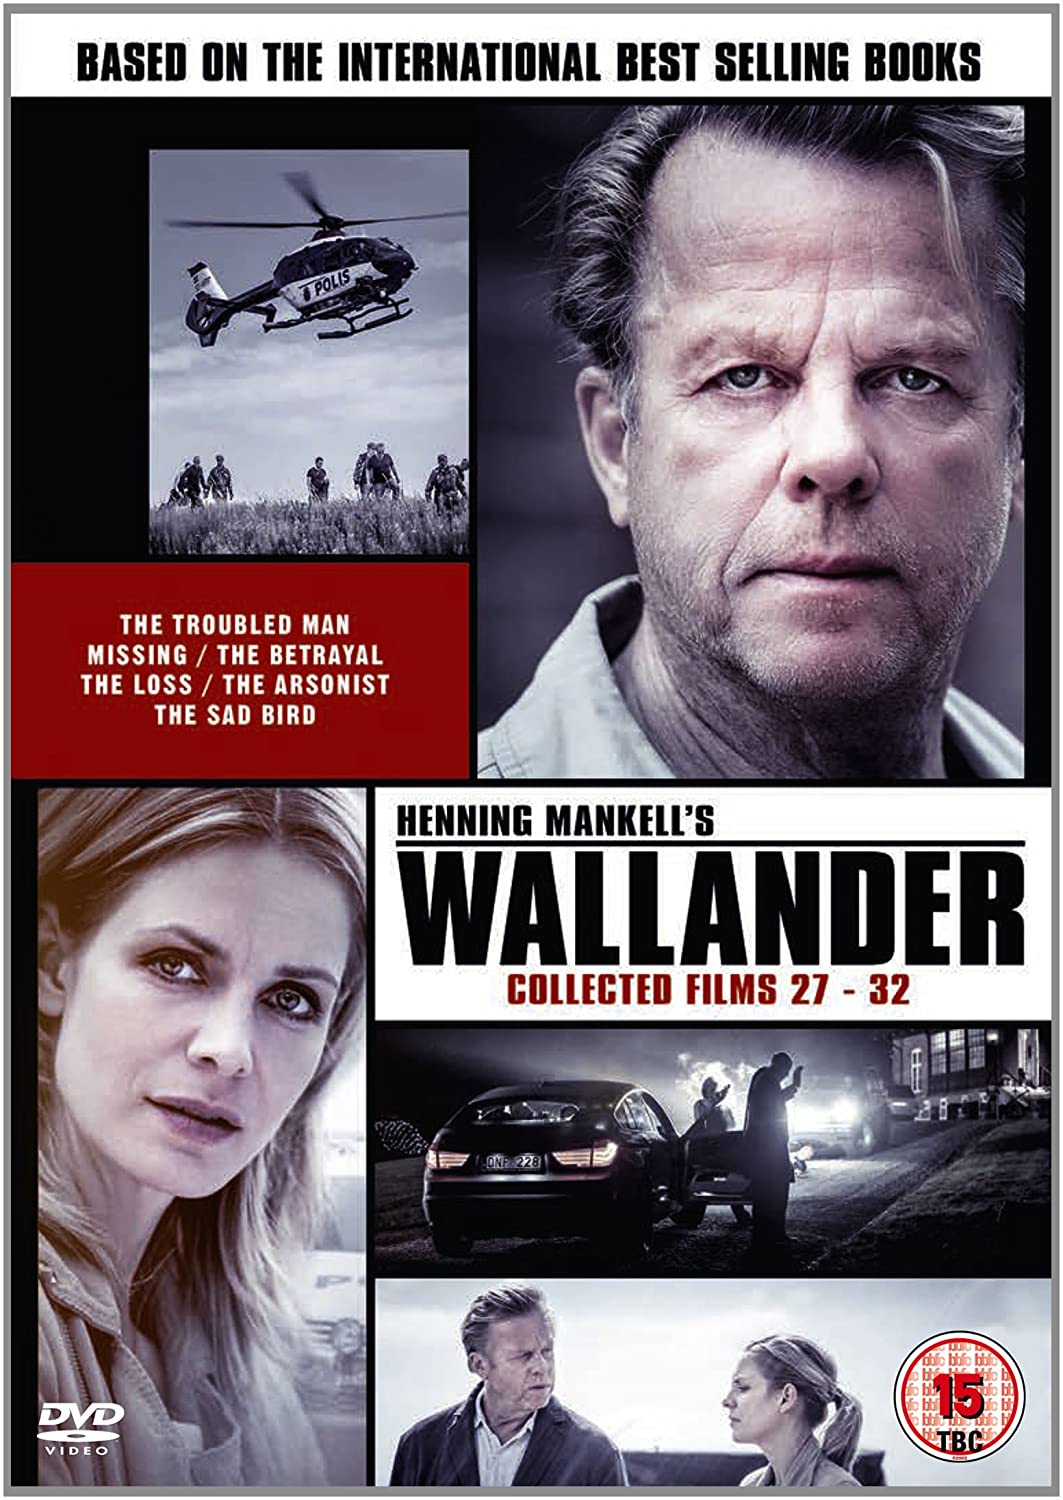 Wallander: Collected Films 27-32 (The Final Season)